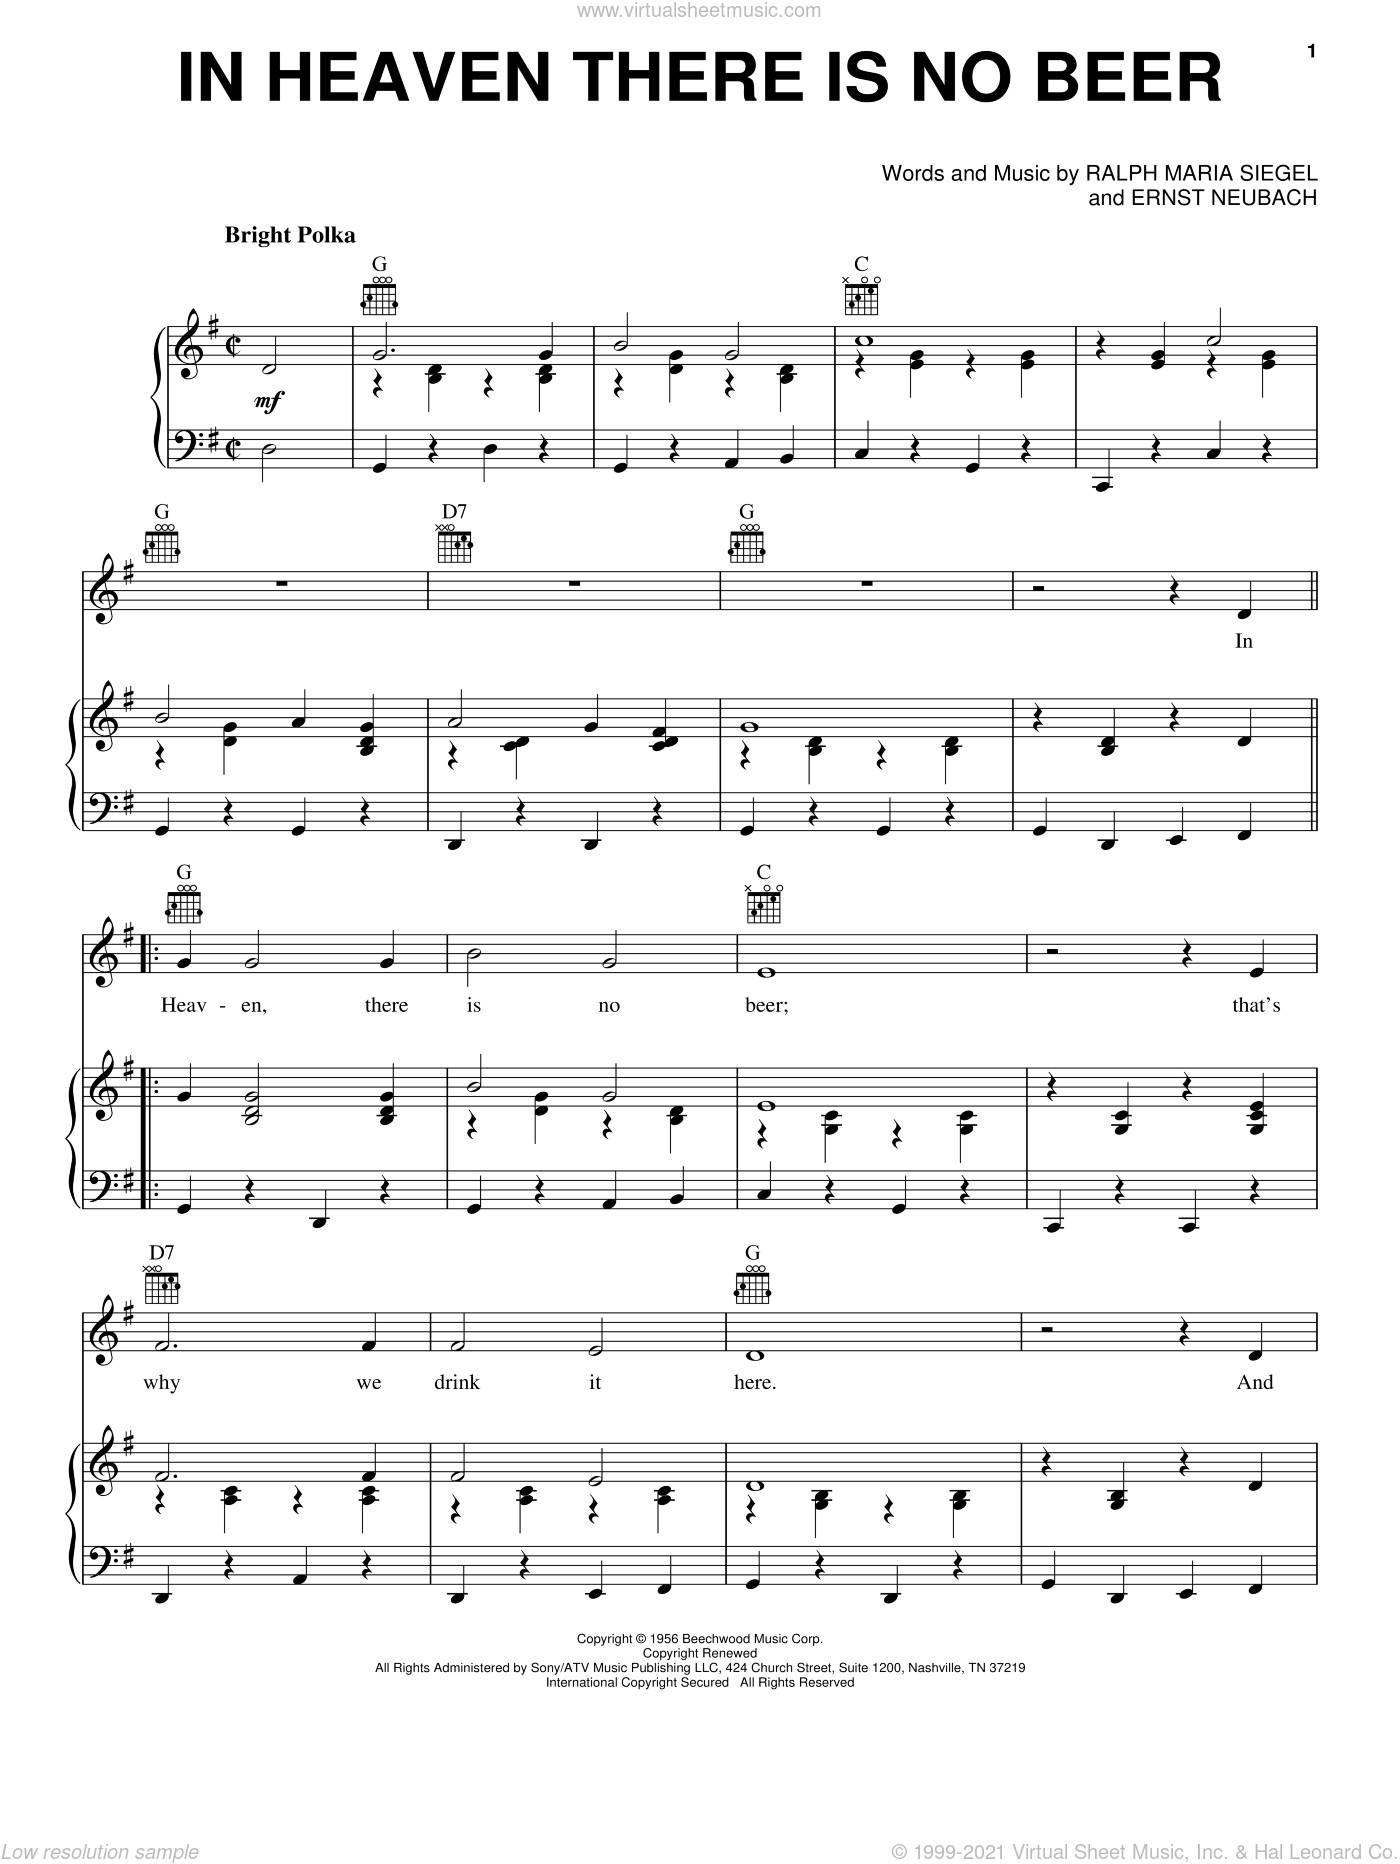 In Heaven There Is No Beer sheet music for voice, piano or guitar by Ernst Neubach and Ralph Maria Siegel, intermediate